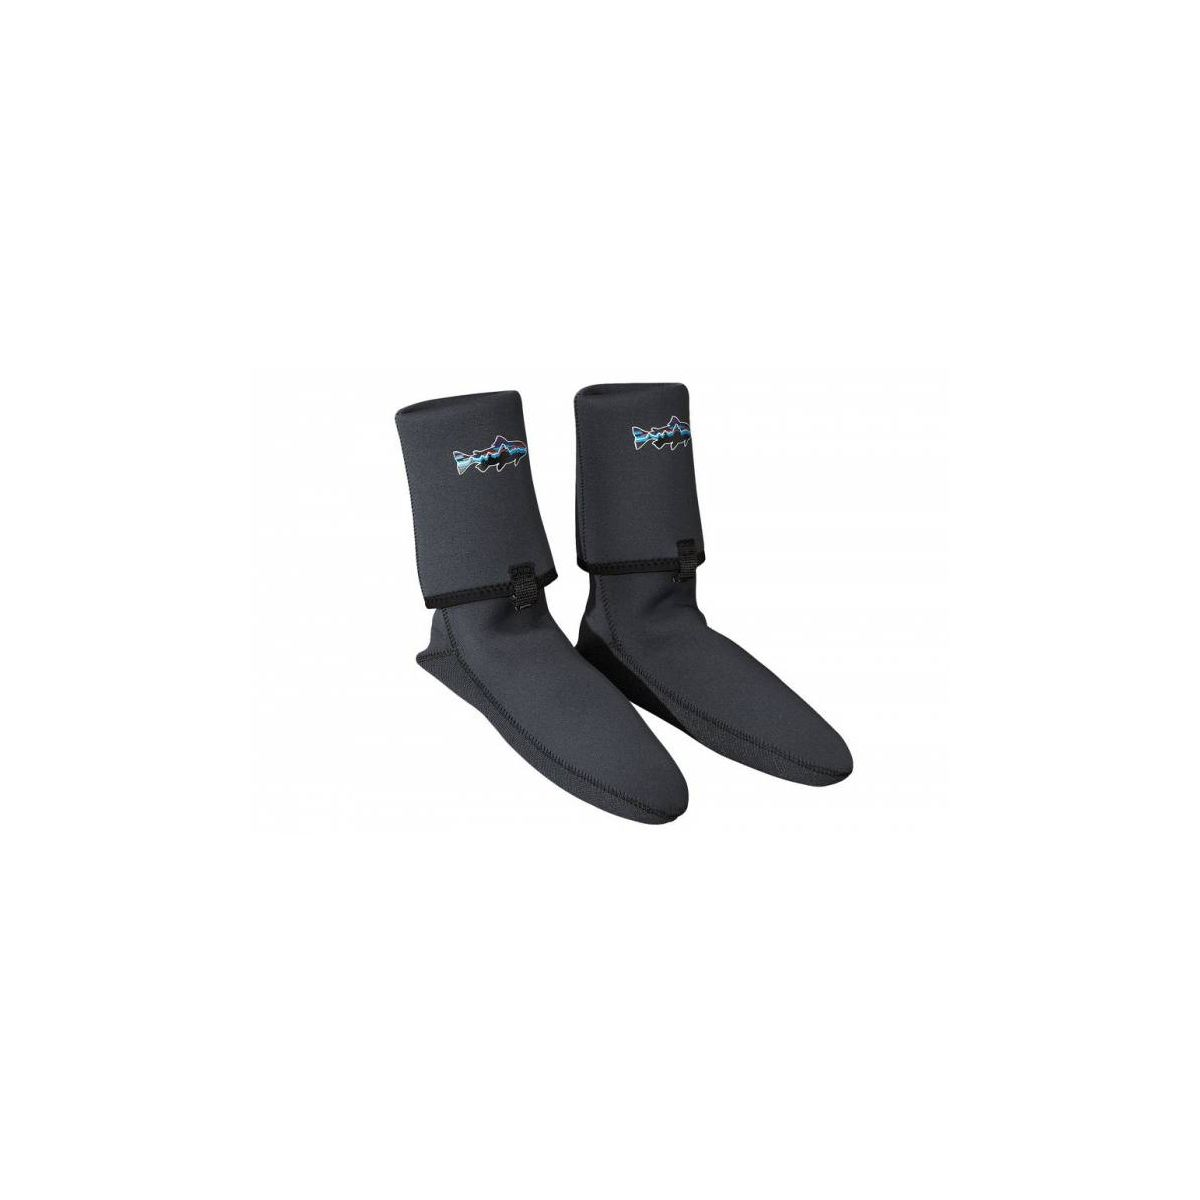 Neoprene Socks with Gravel Guard